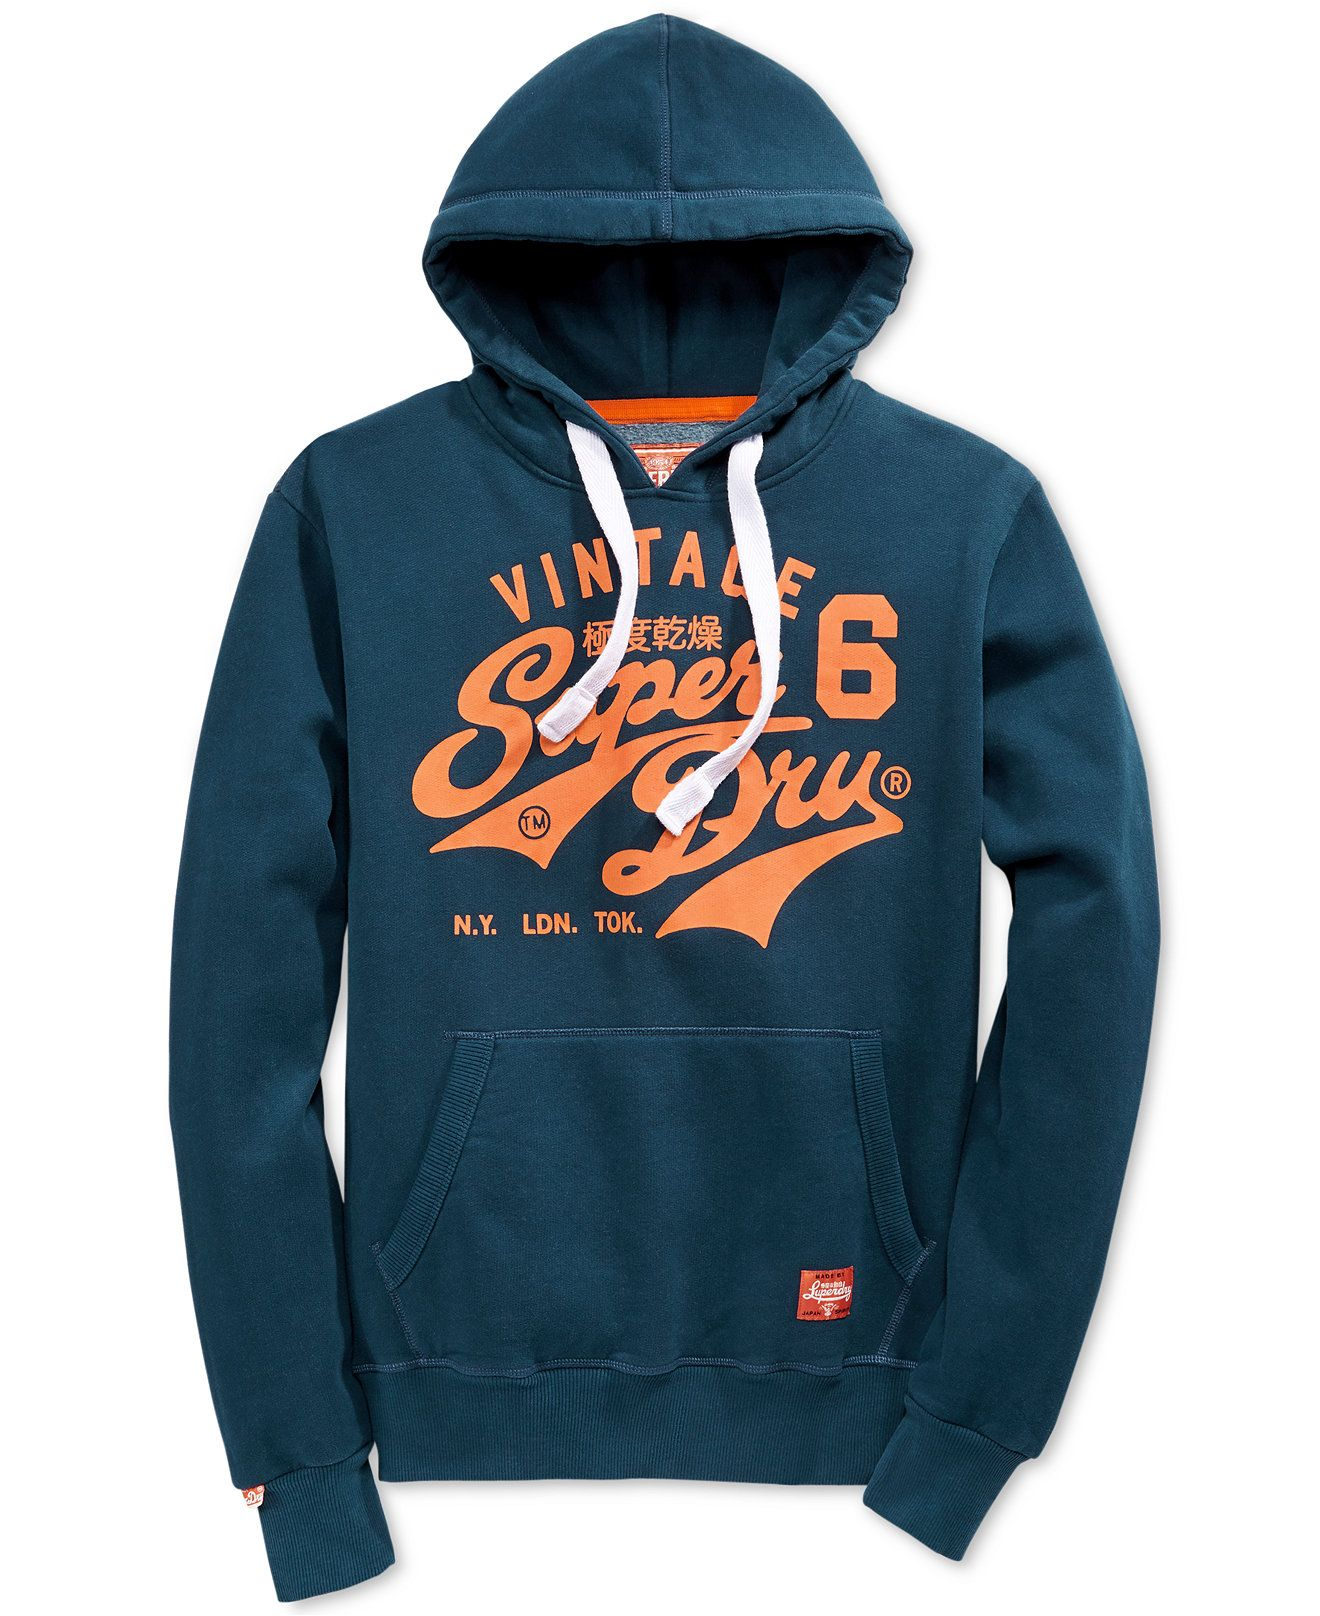 Superdry Men's Graphic Print Hoodie Hoodies & Sweatshirts